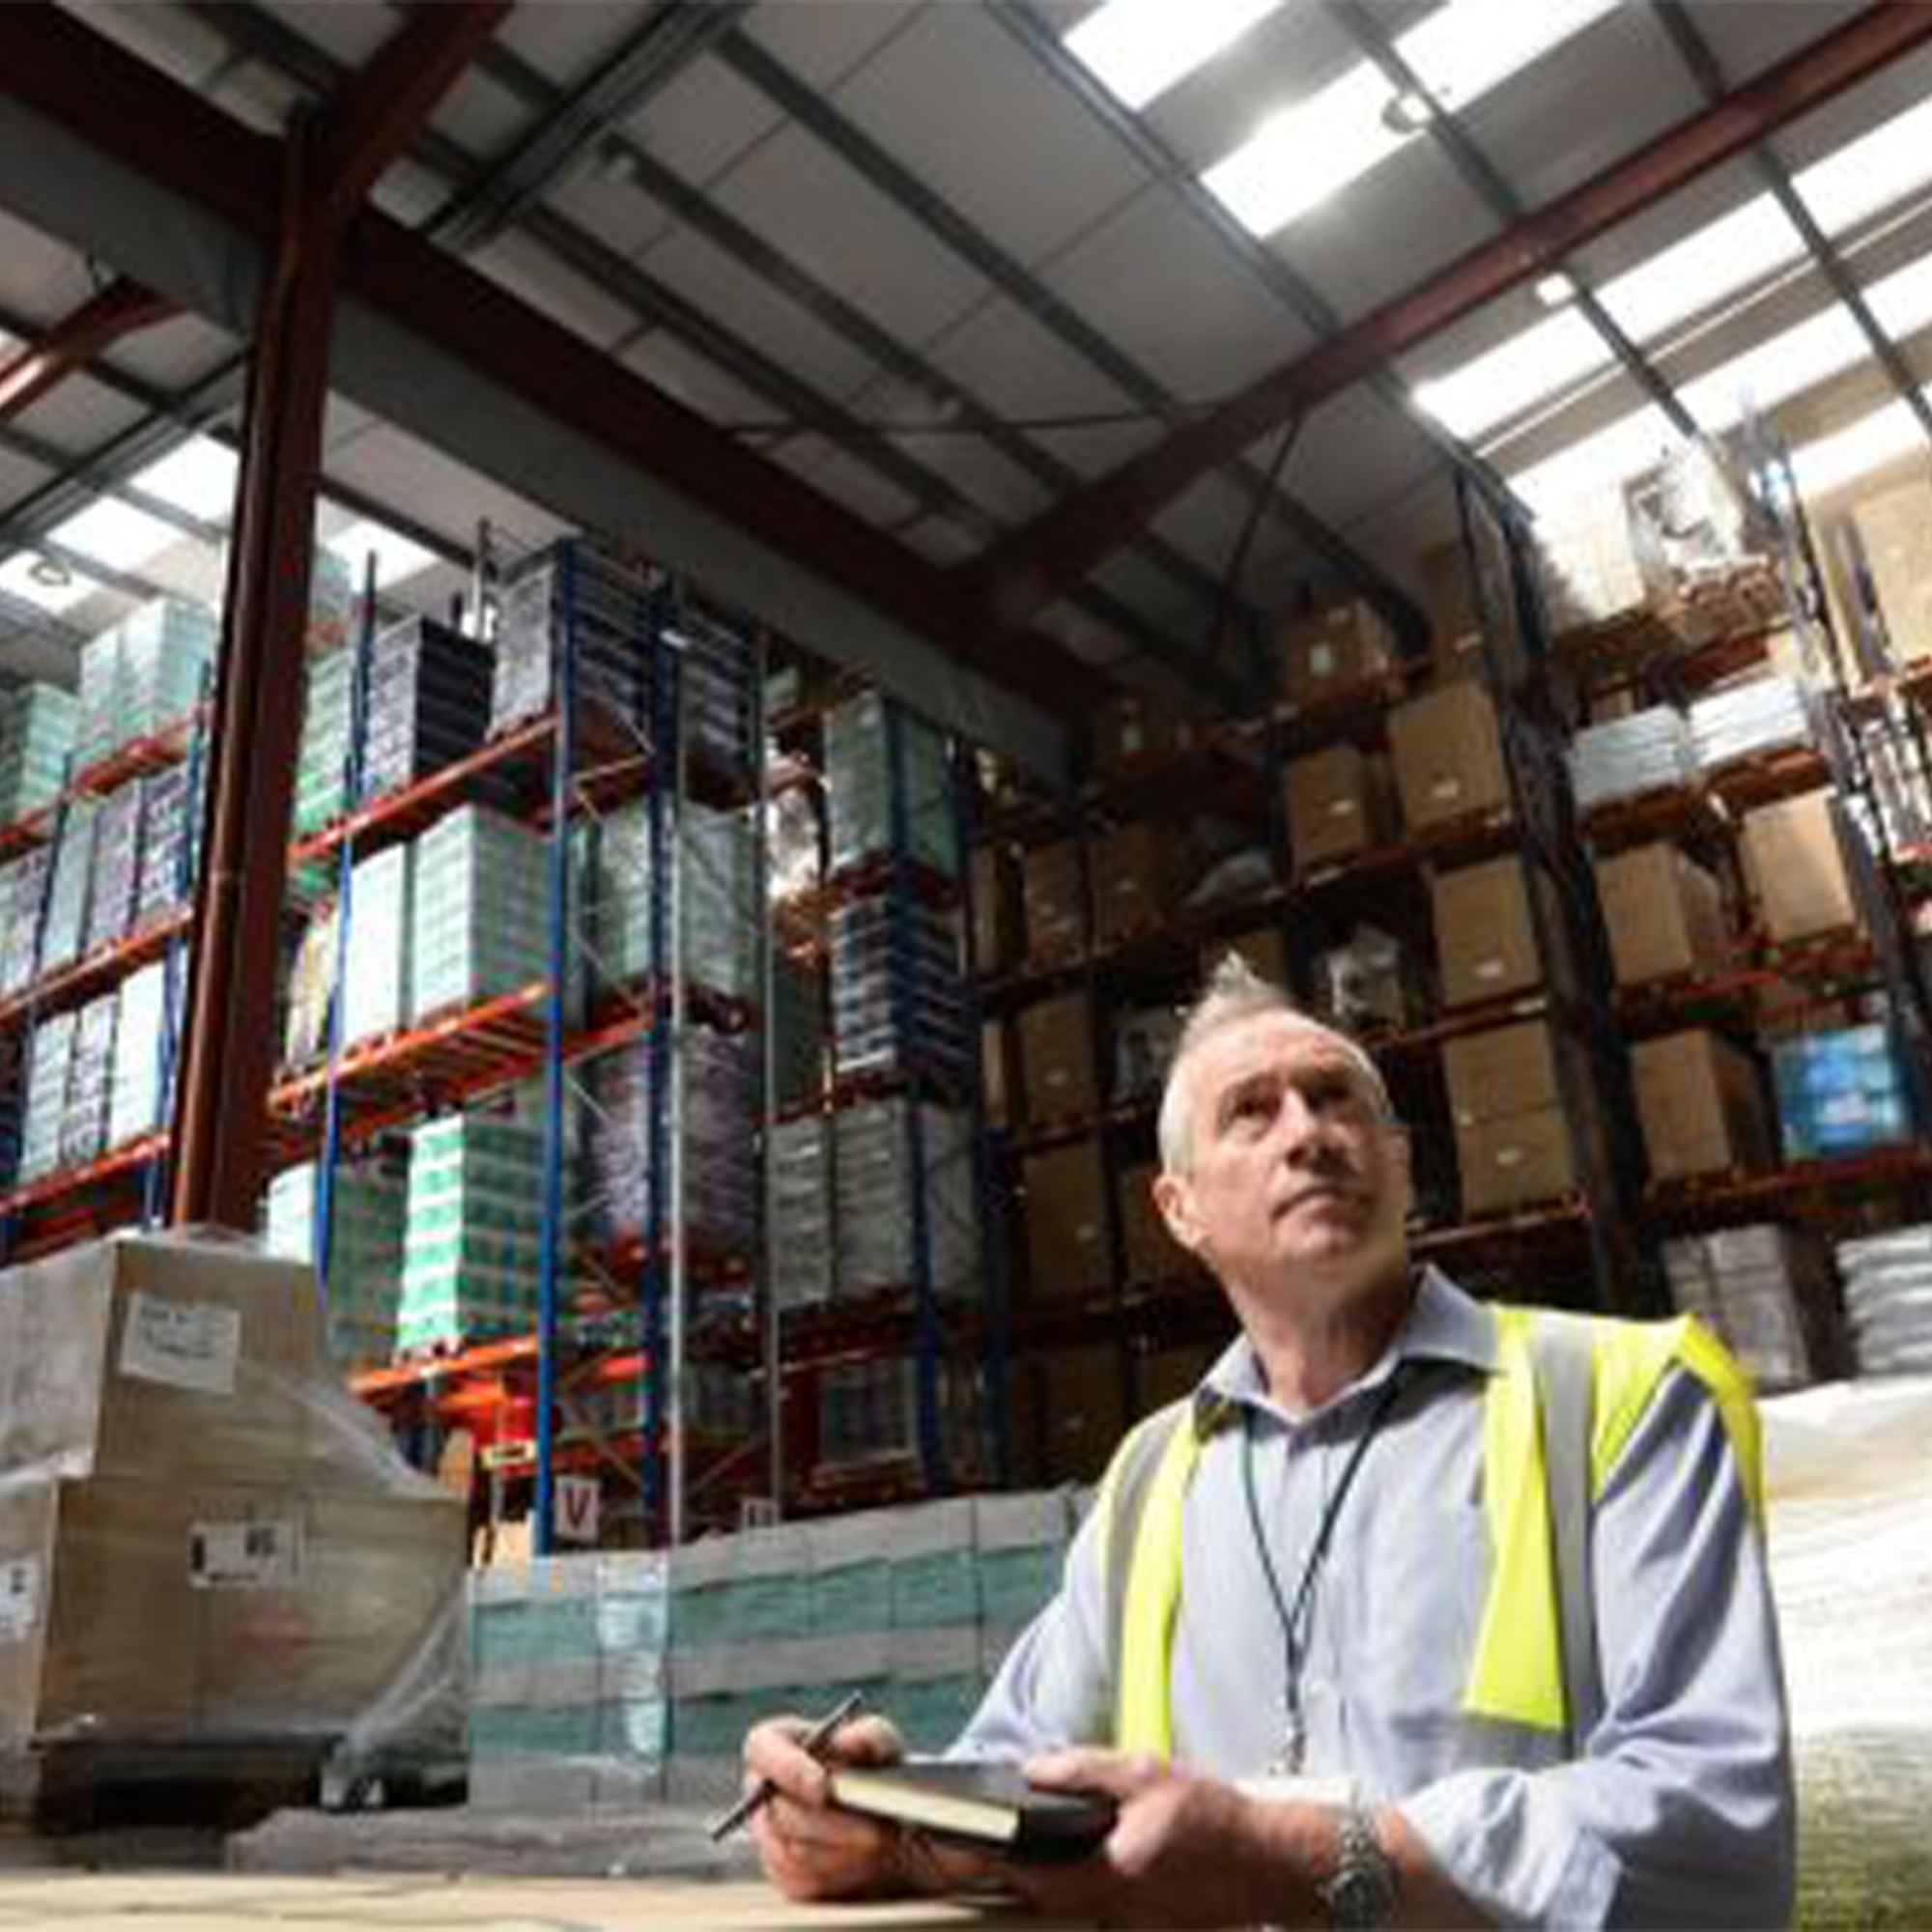 Warehouse space scarce due to Brexit, Covid and Christmas stockpiling